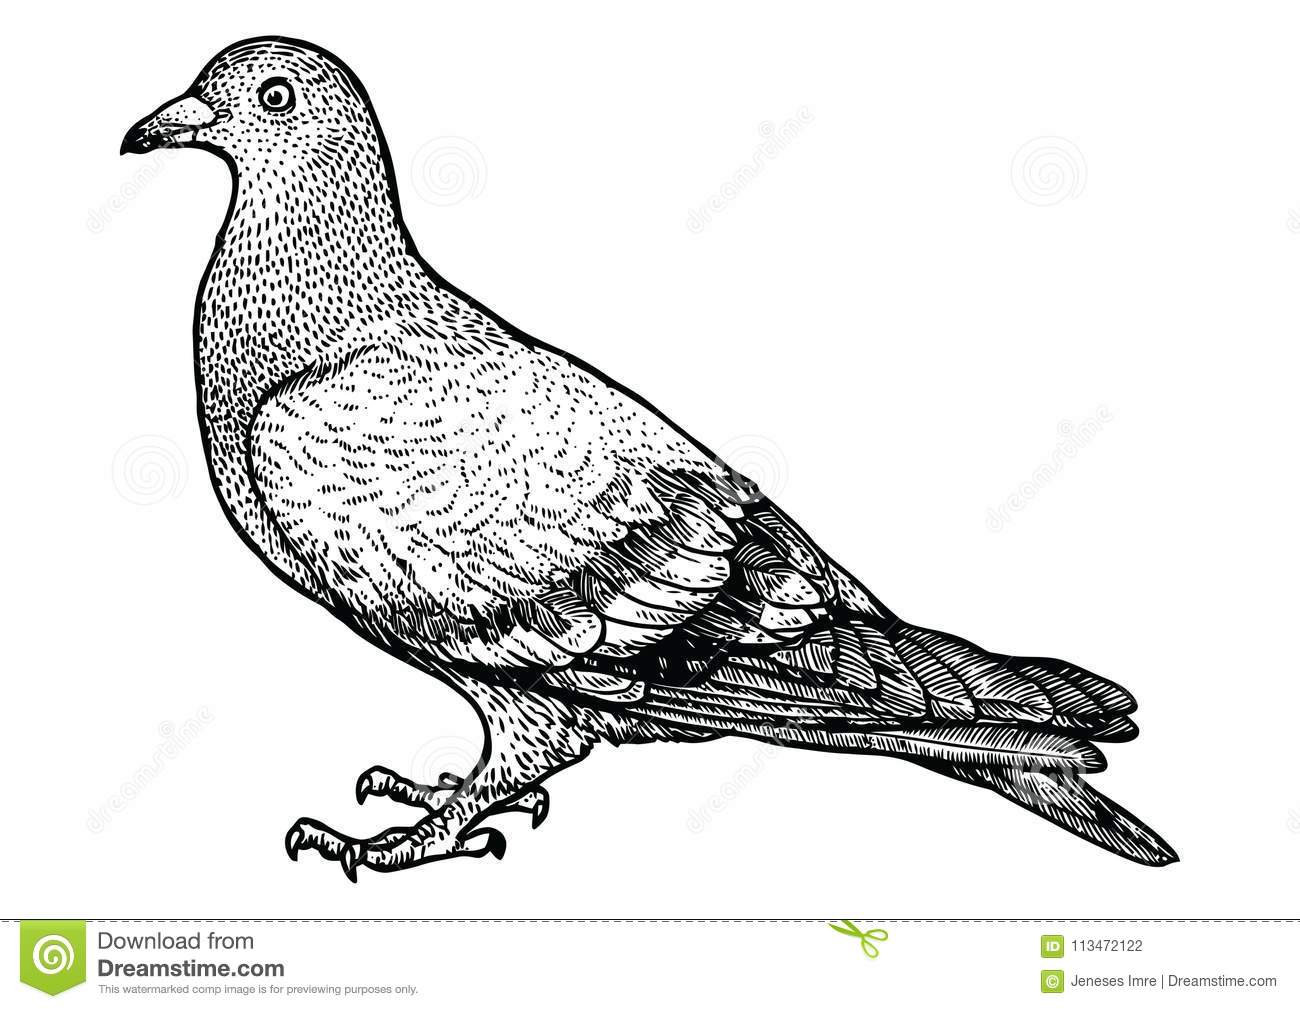 Pigeon Illustration, Drawing, Engraving, Line Art, Realistic